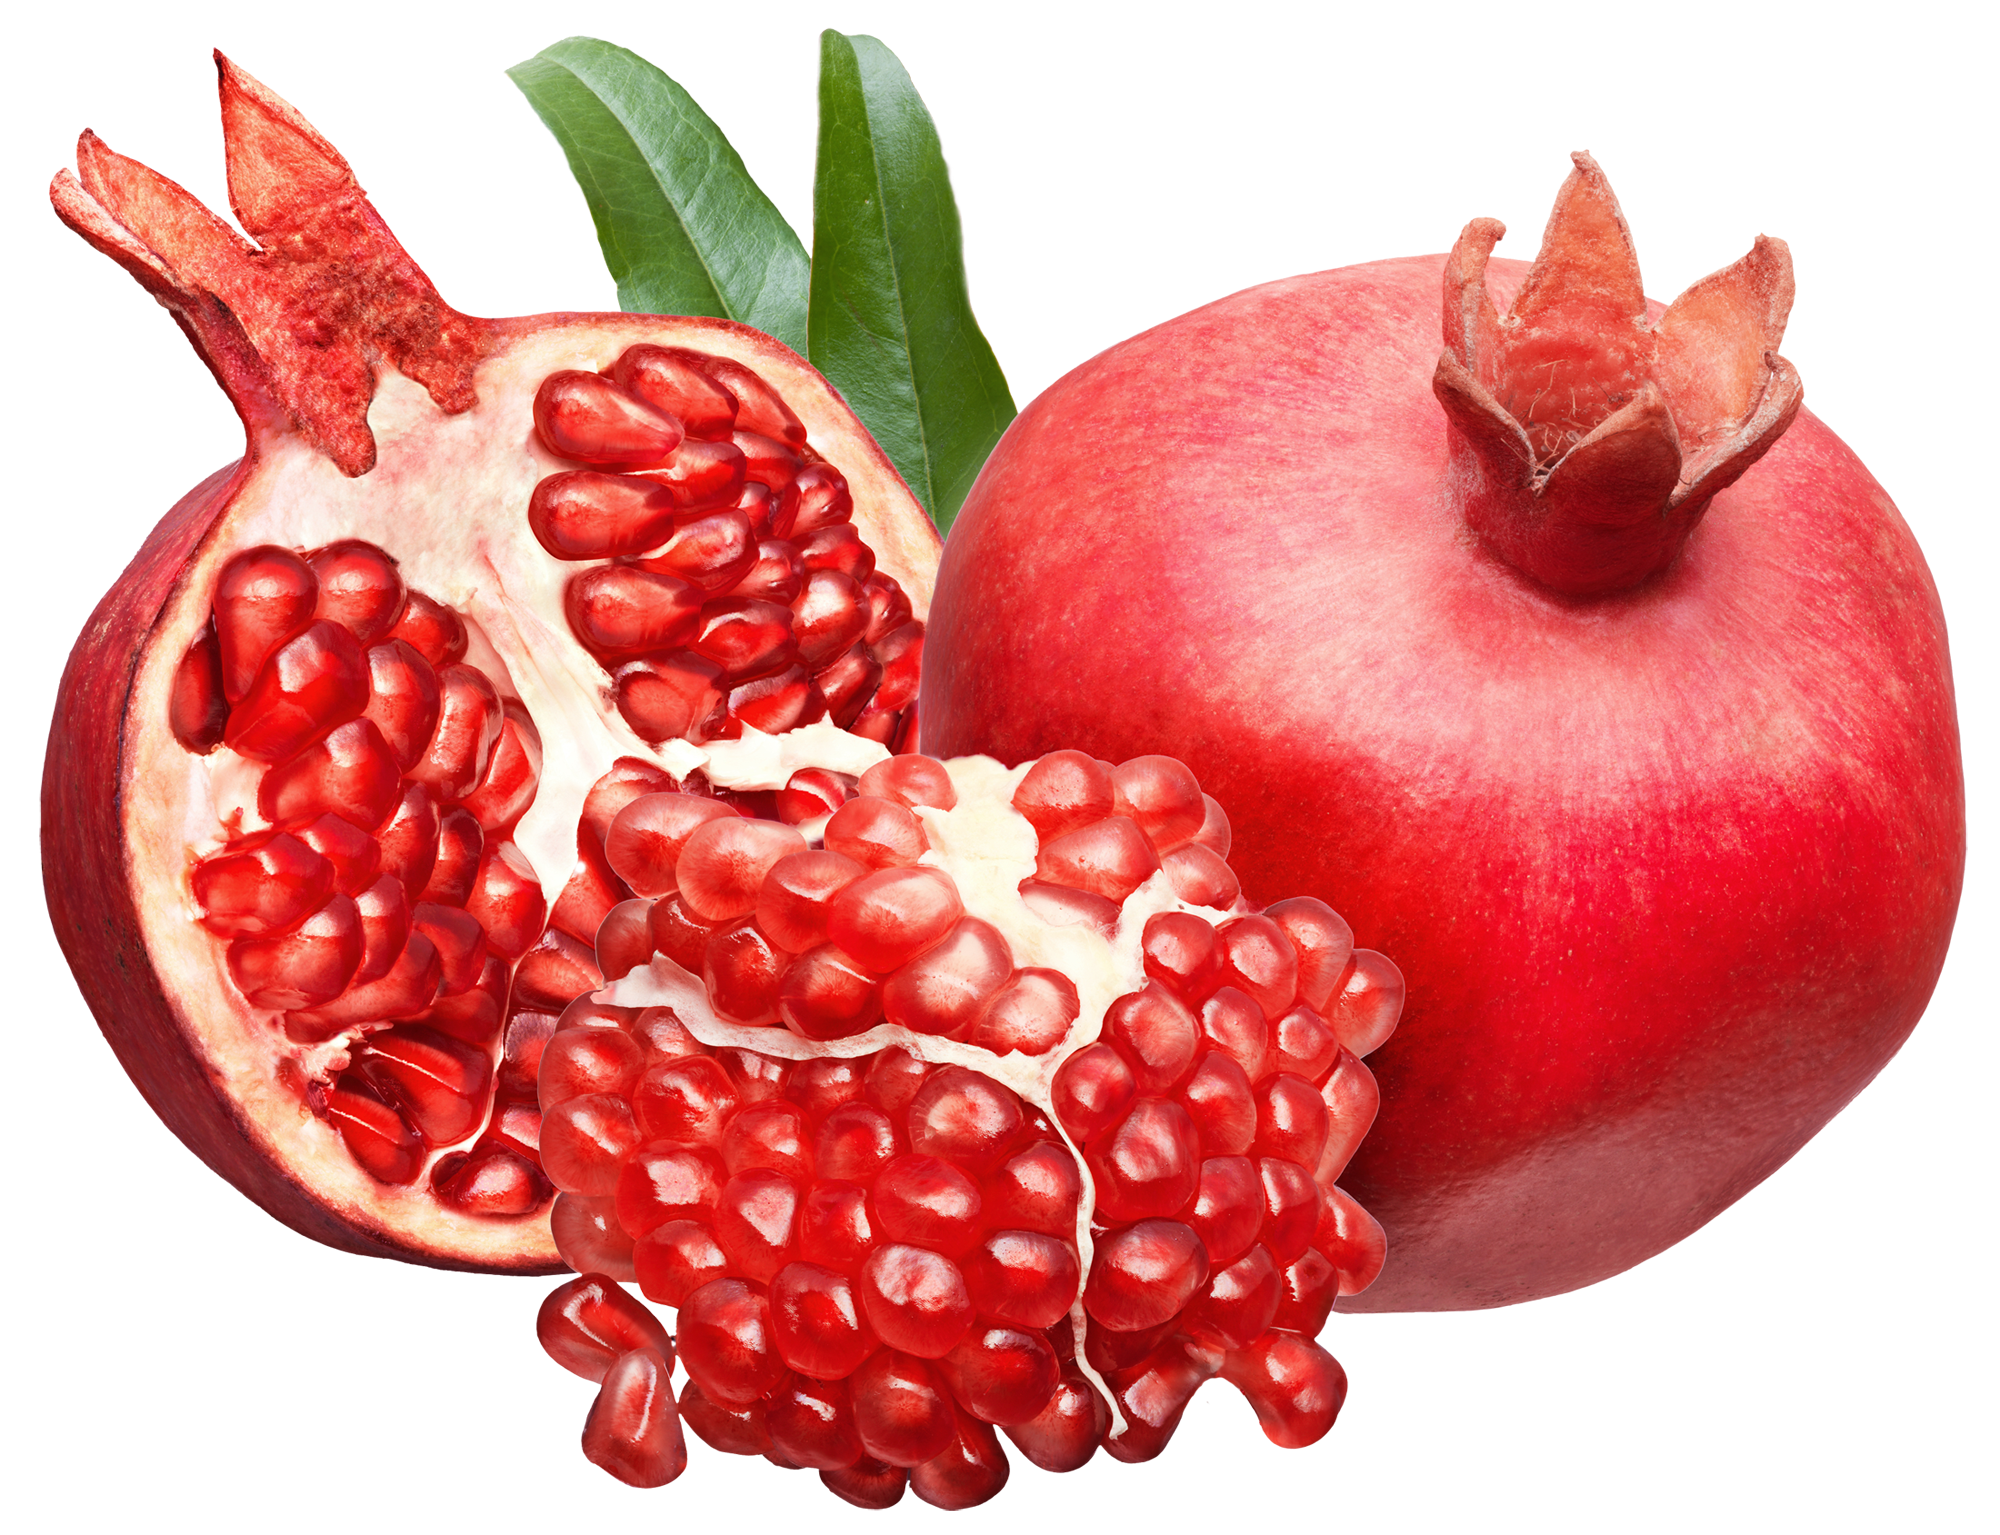 pomegranate png clipart picture clipart pinterest rh pinterest com pomegranate clipart free pomegranate tree clipart